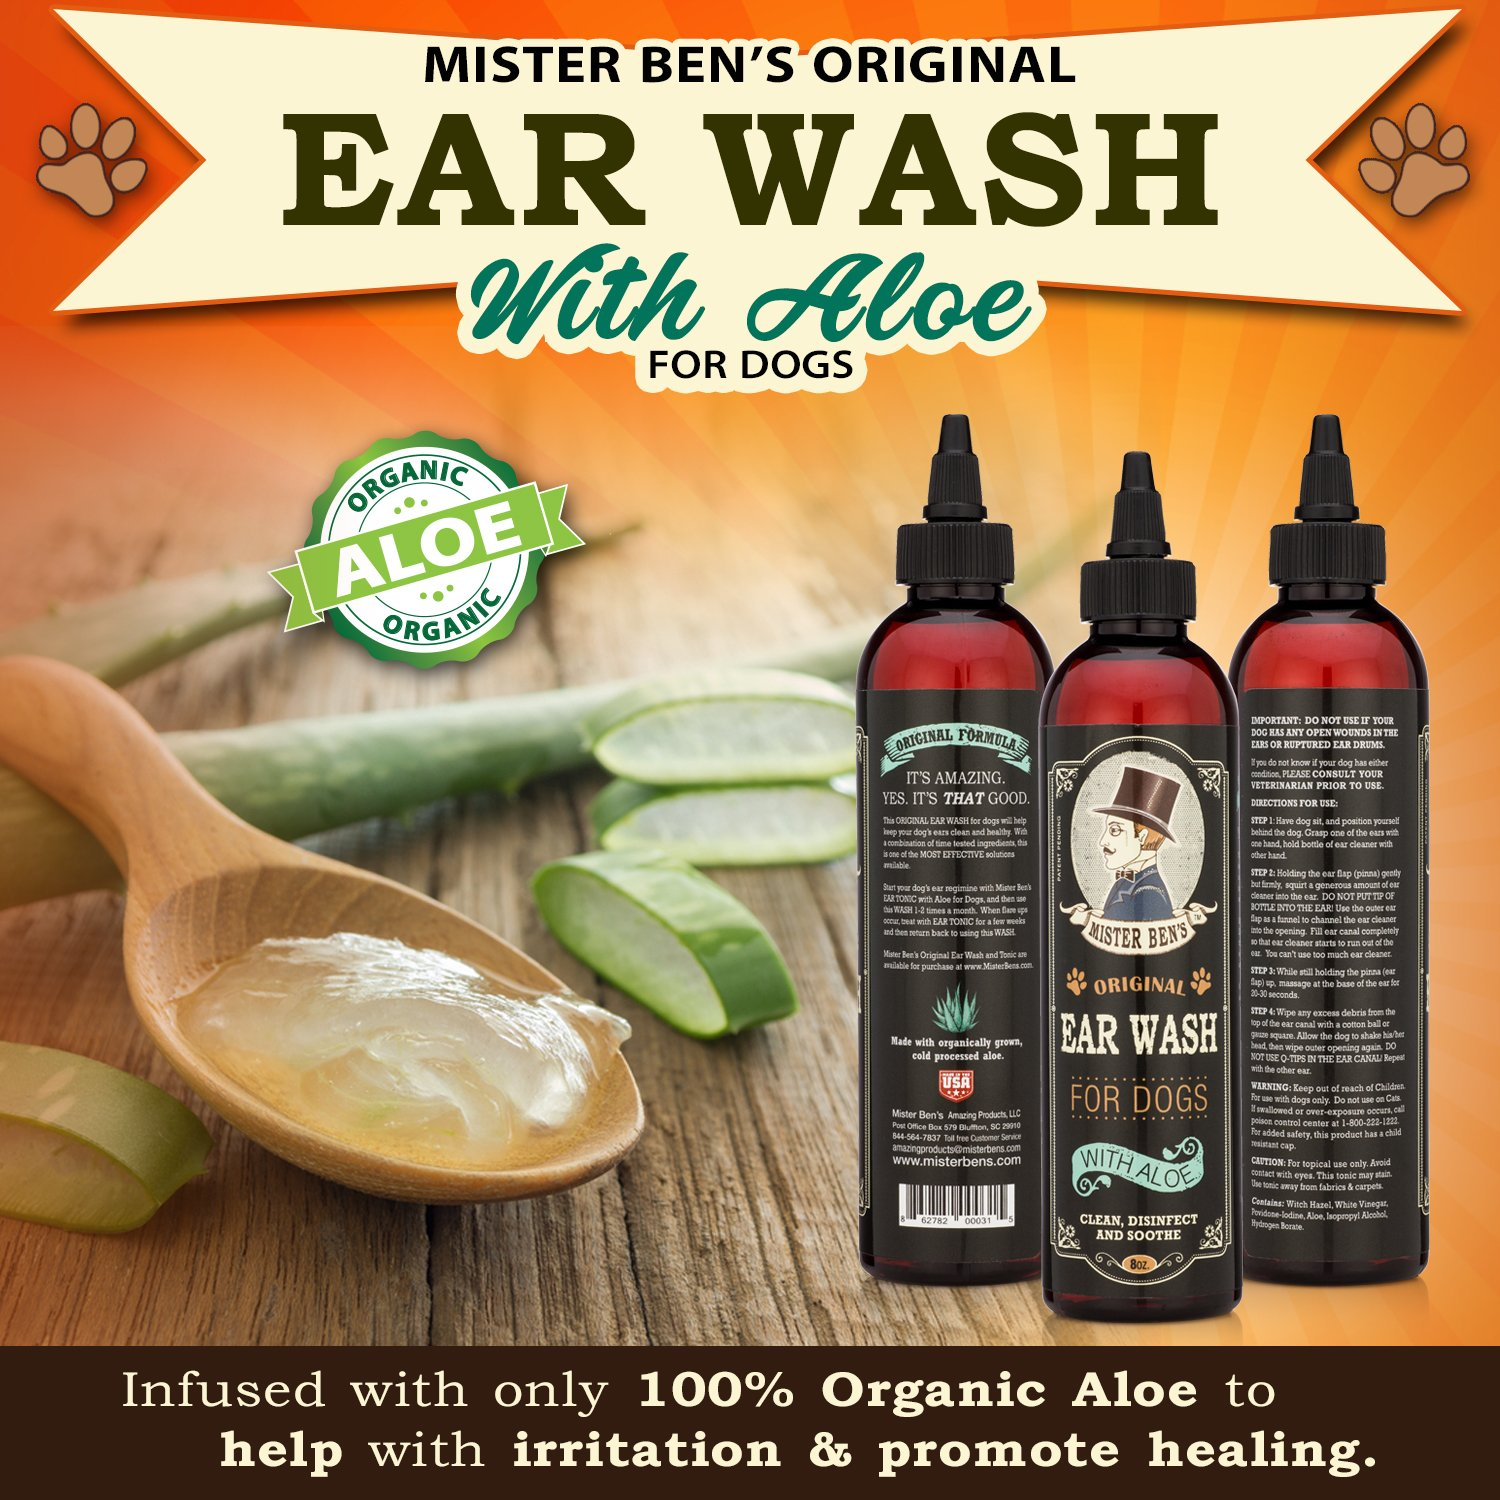 Mister Ben's MOST EFFECTIVE DOG EAR WASH Voted the Best Dog Ear Cleaner - Provides FAST RELIEF from Dog Ear Infections, Irritations, Itching, Odors, Bacteria, Mites, Fungus & Yeast by Mister Ben's (Image #2)